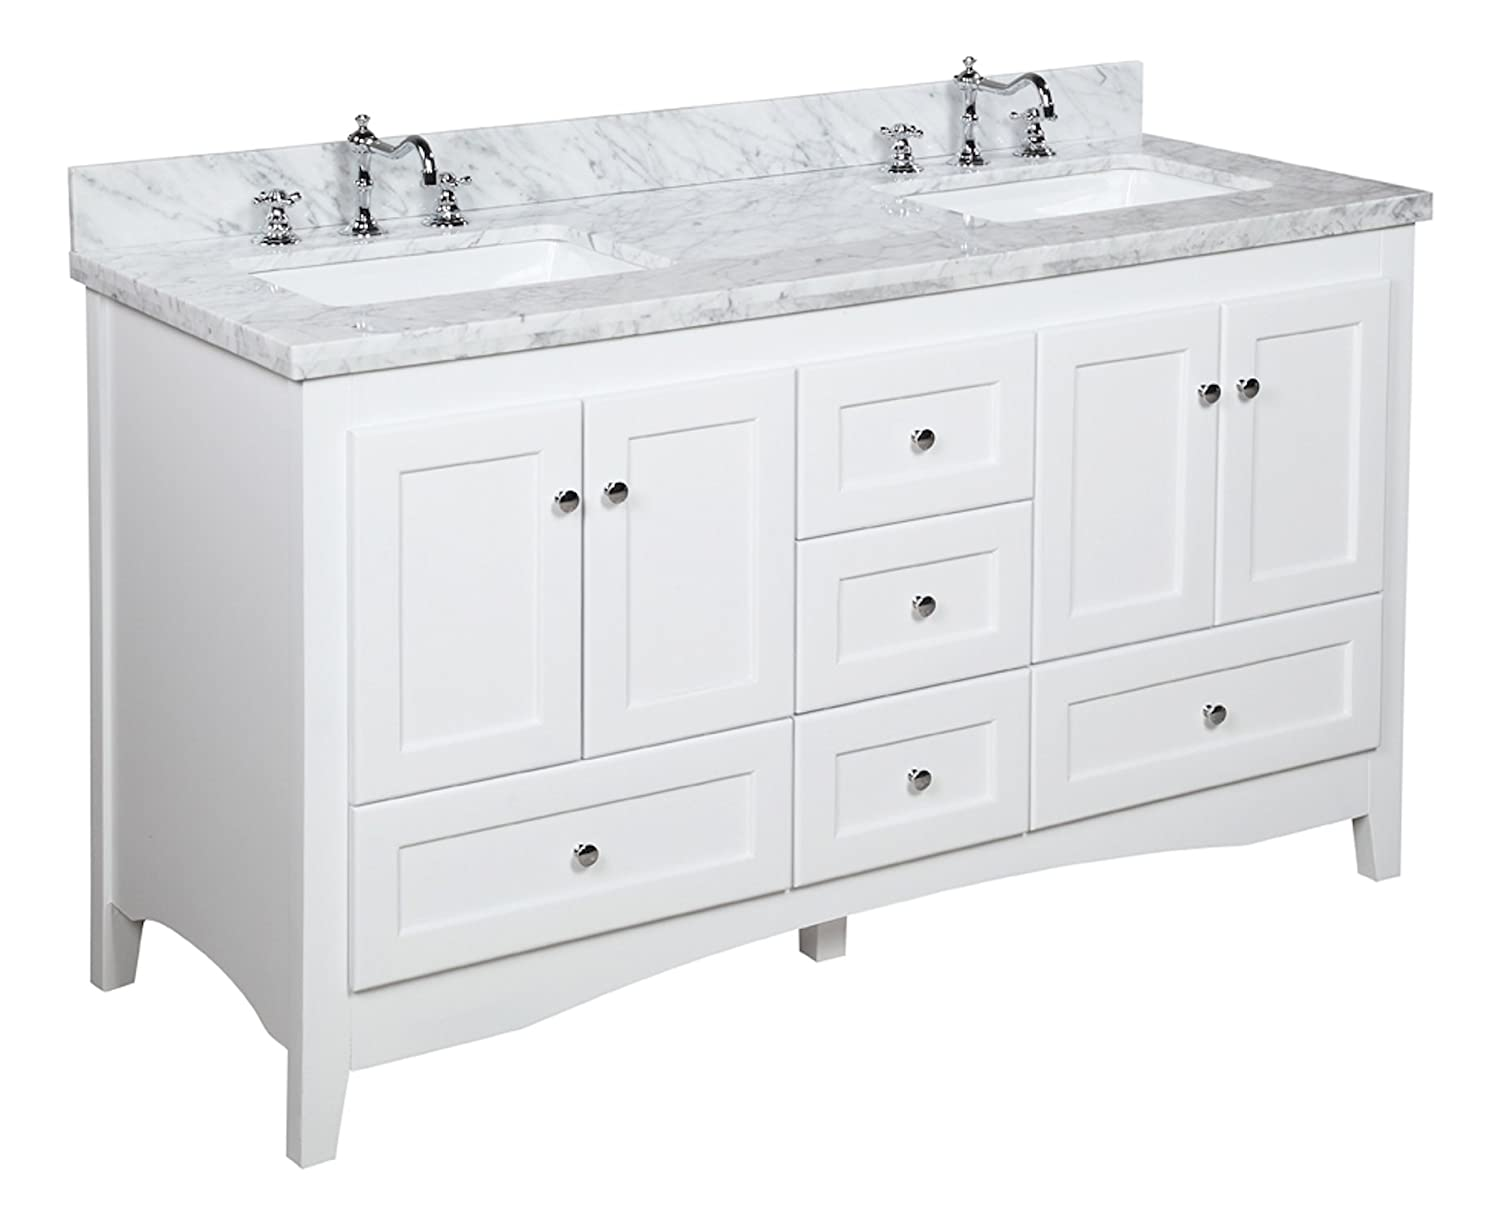 modern bathroom bosco sink matching mirror vanity double countertop w quartz products and